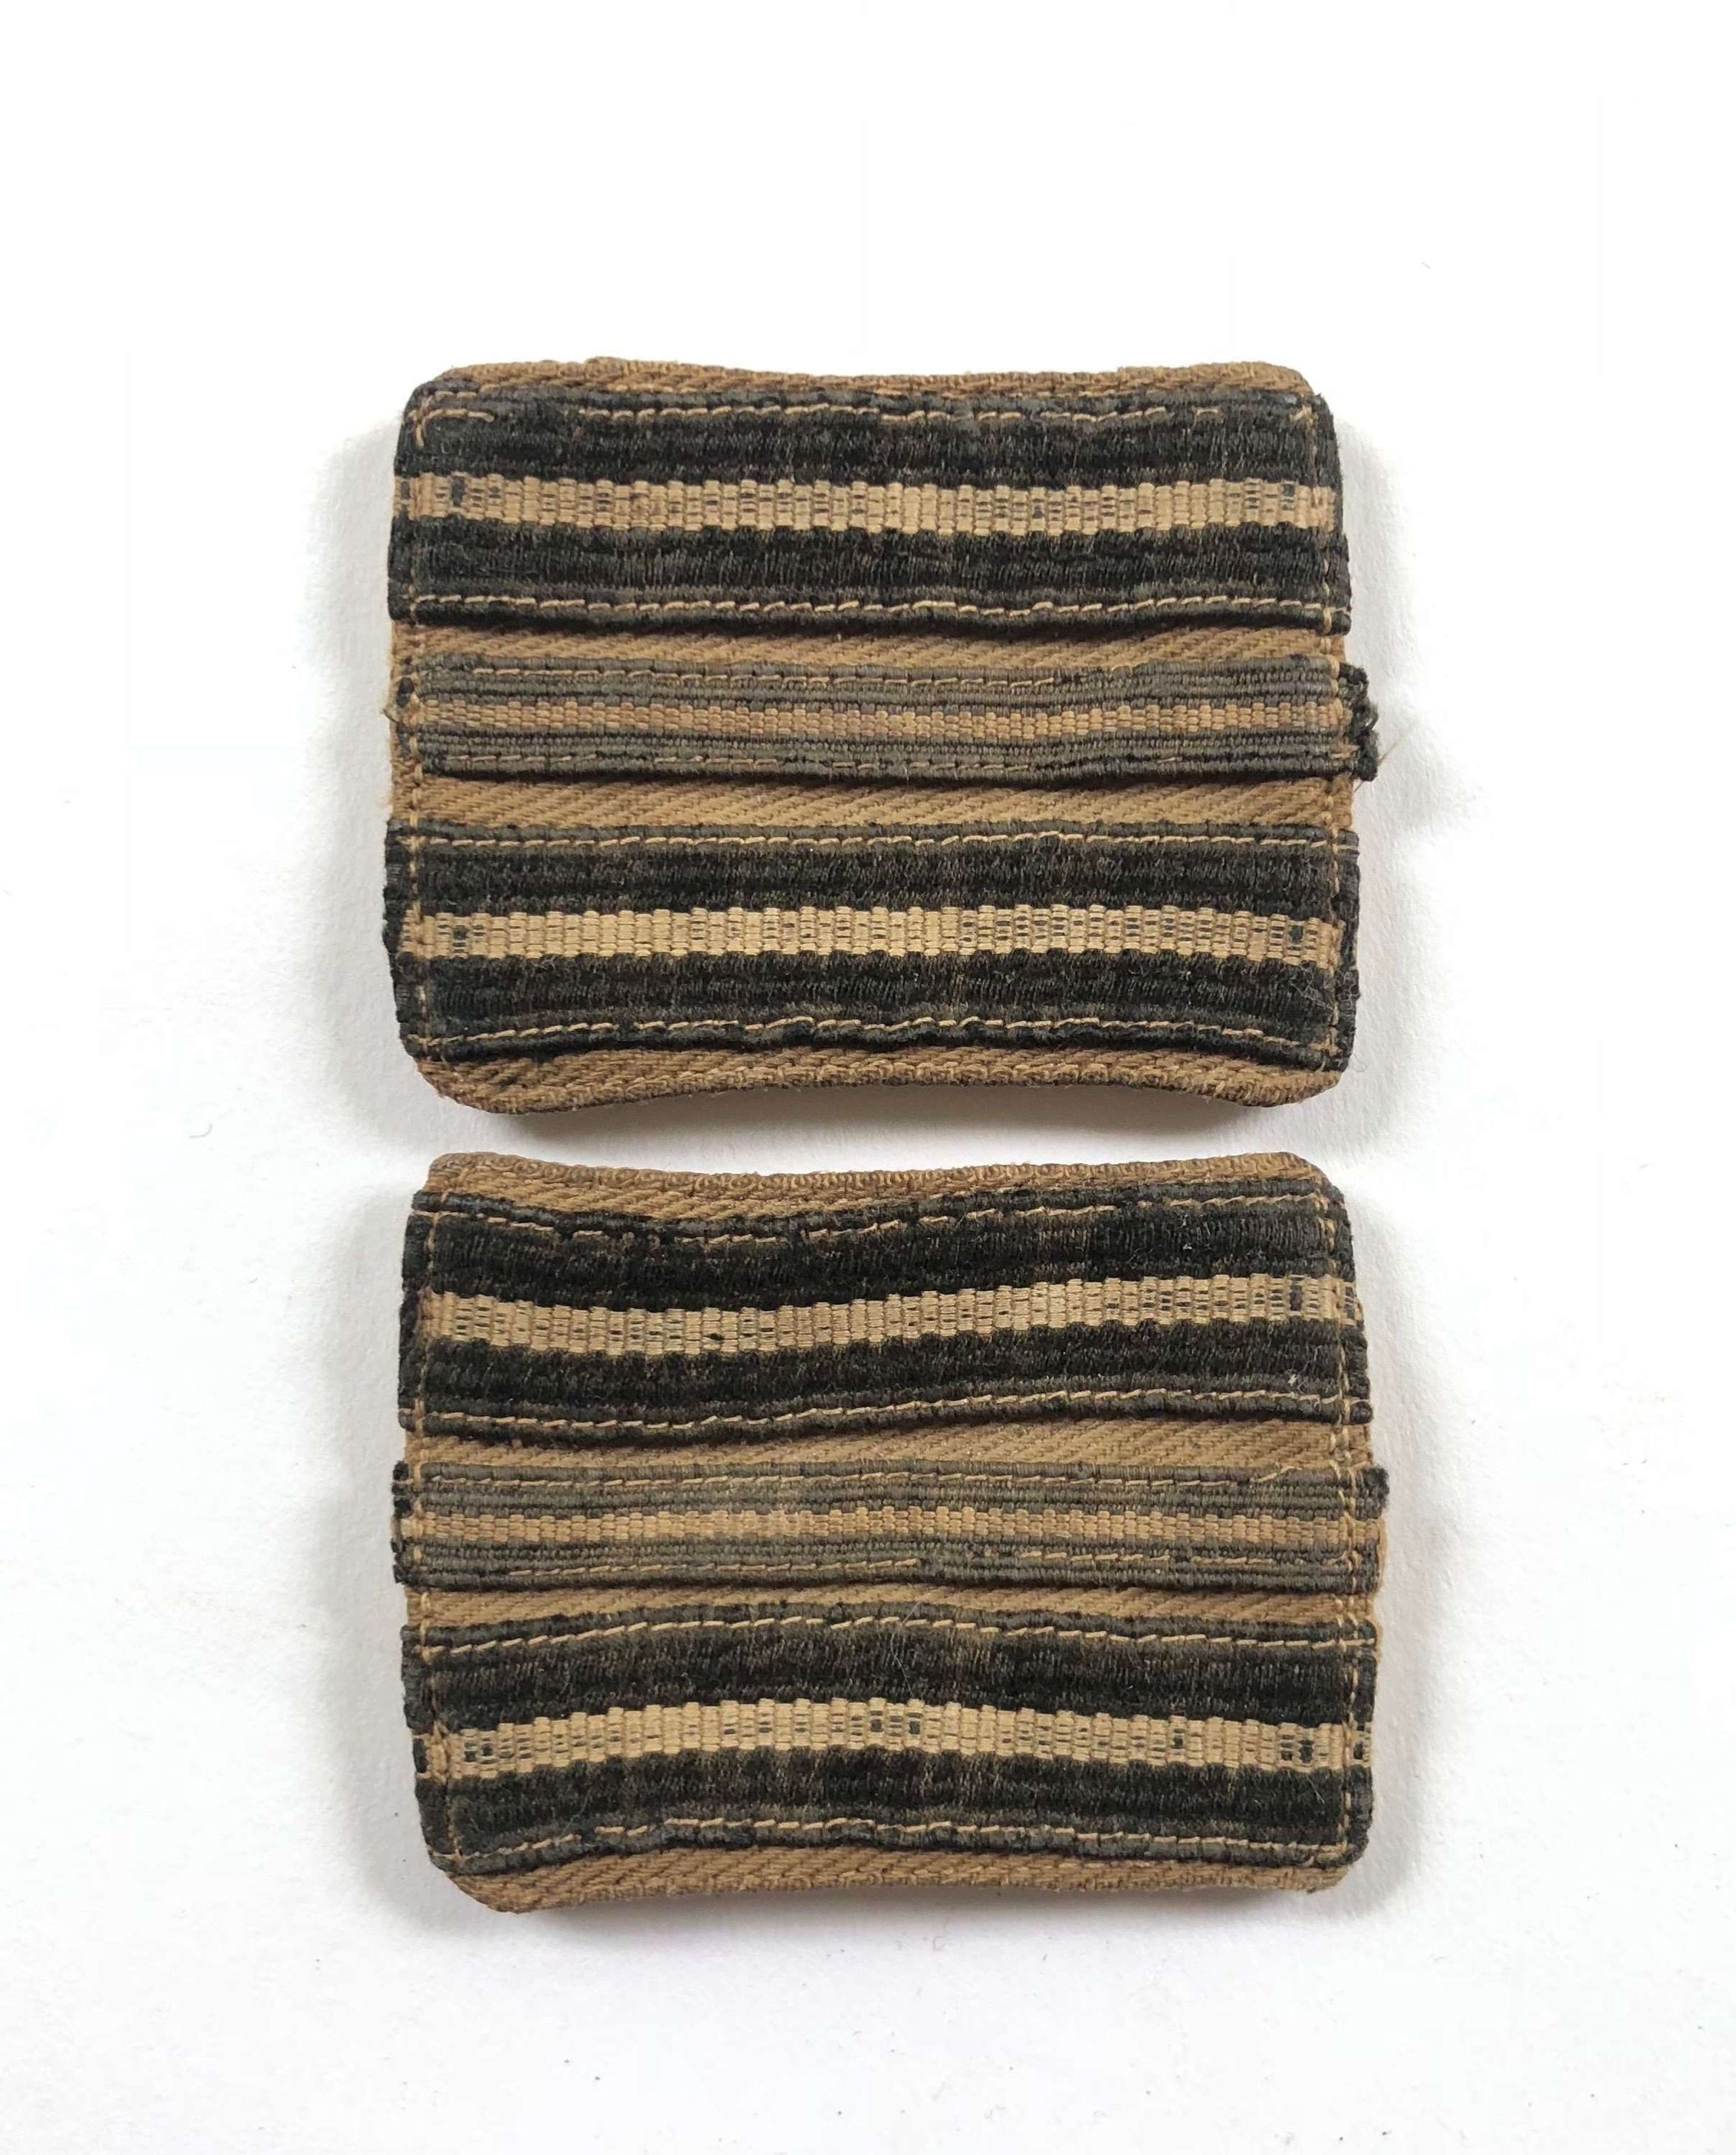 WW2 RAF Middle East Italy Officer's Rank Slides.